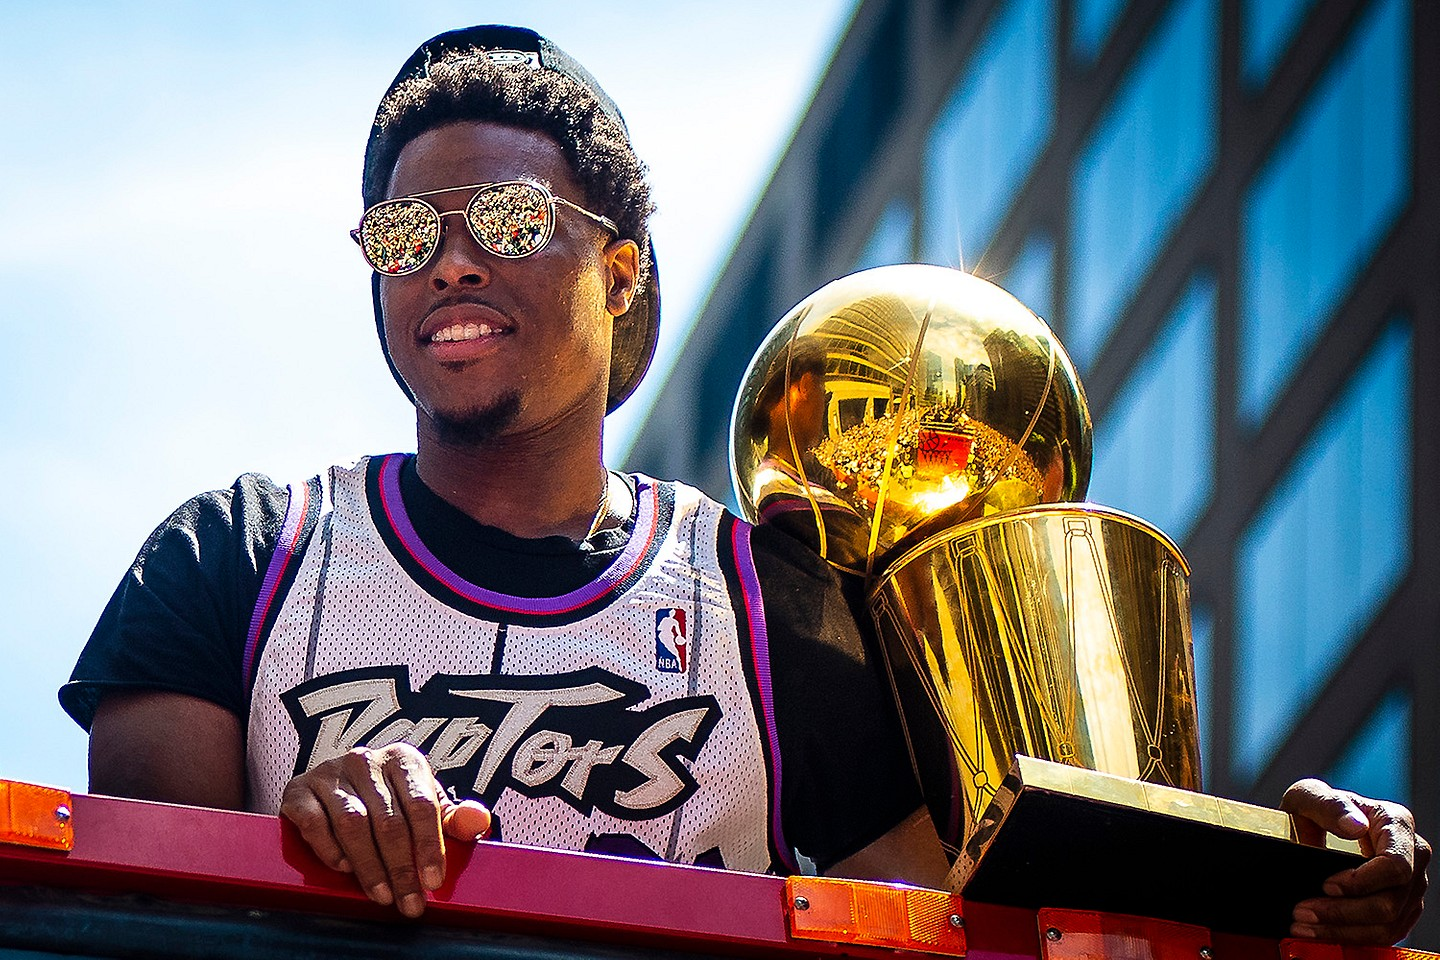 The crowd is reflected in Toronto Raptors point guard Kyle Lowry's sunglasses as he holds the Larry O'Brien NBA Championship Trophy during the 2019 Toronto Raptors Championship parade, Toronto, Monday, June 17, 2019. The Raptors became the first non-American team to win an NBA title after defeating the Golden State Warriors 4–2.